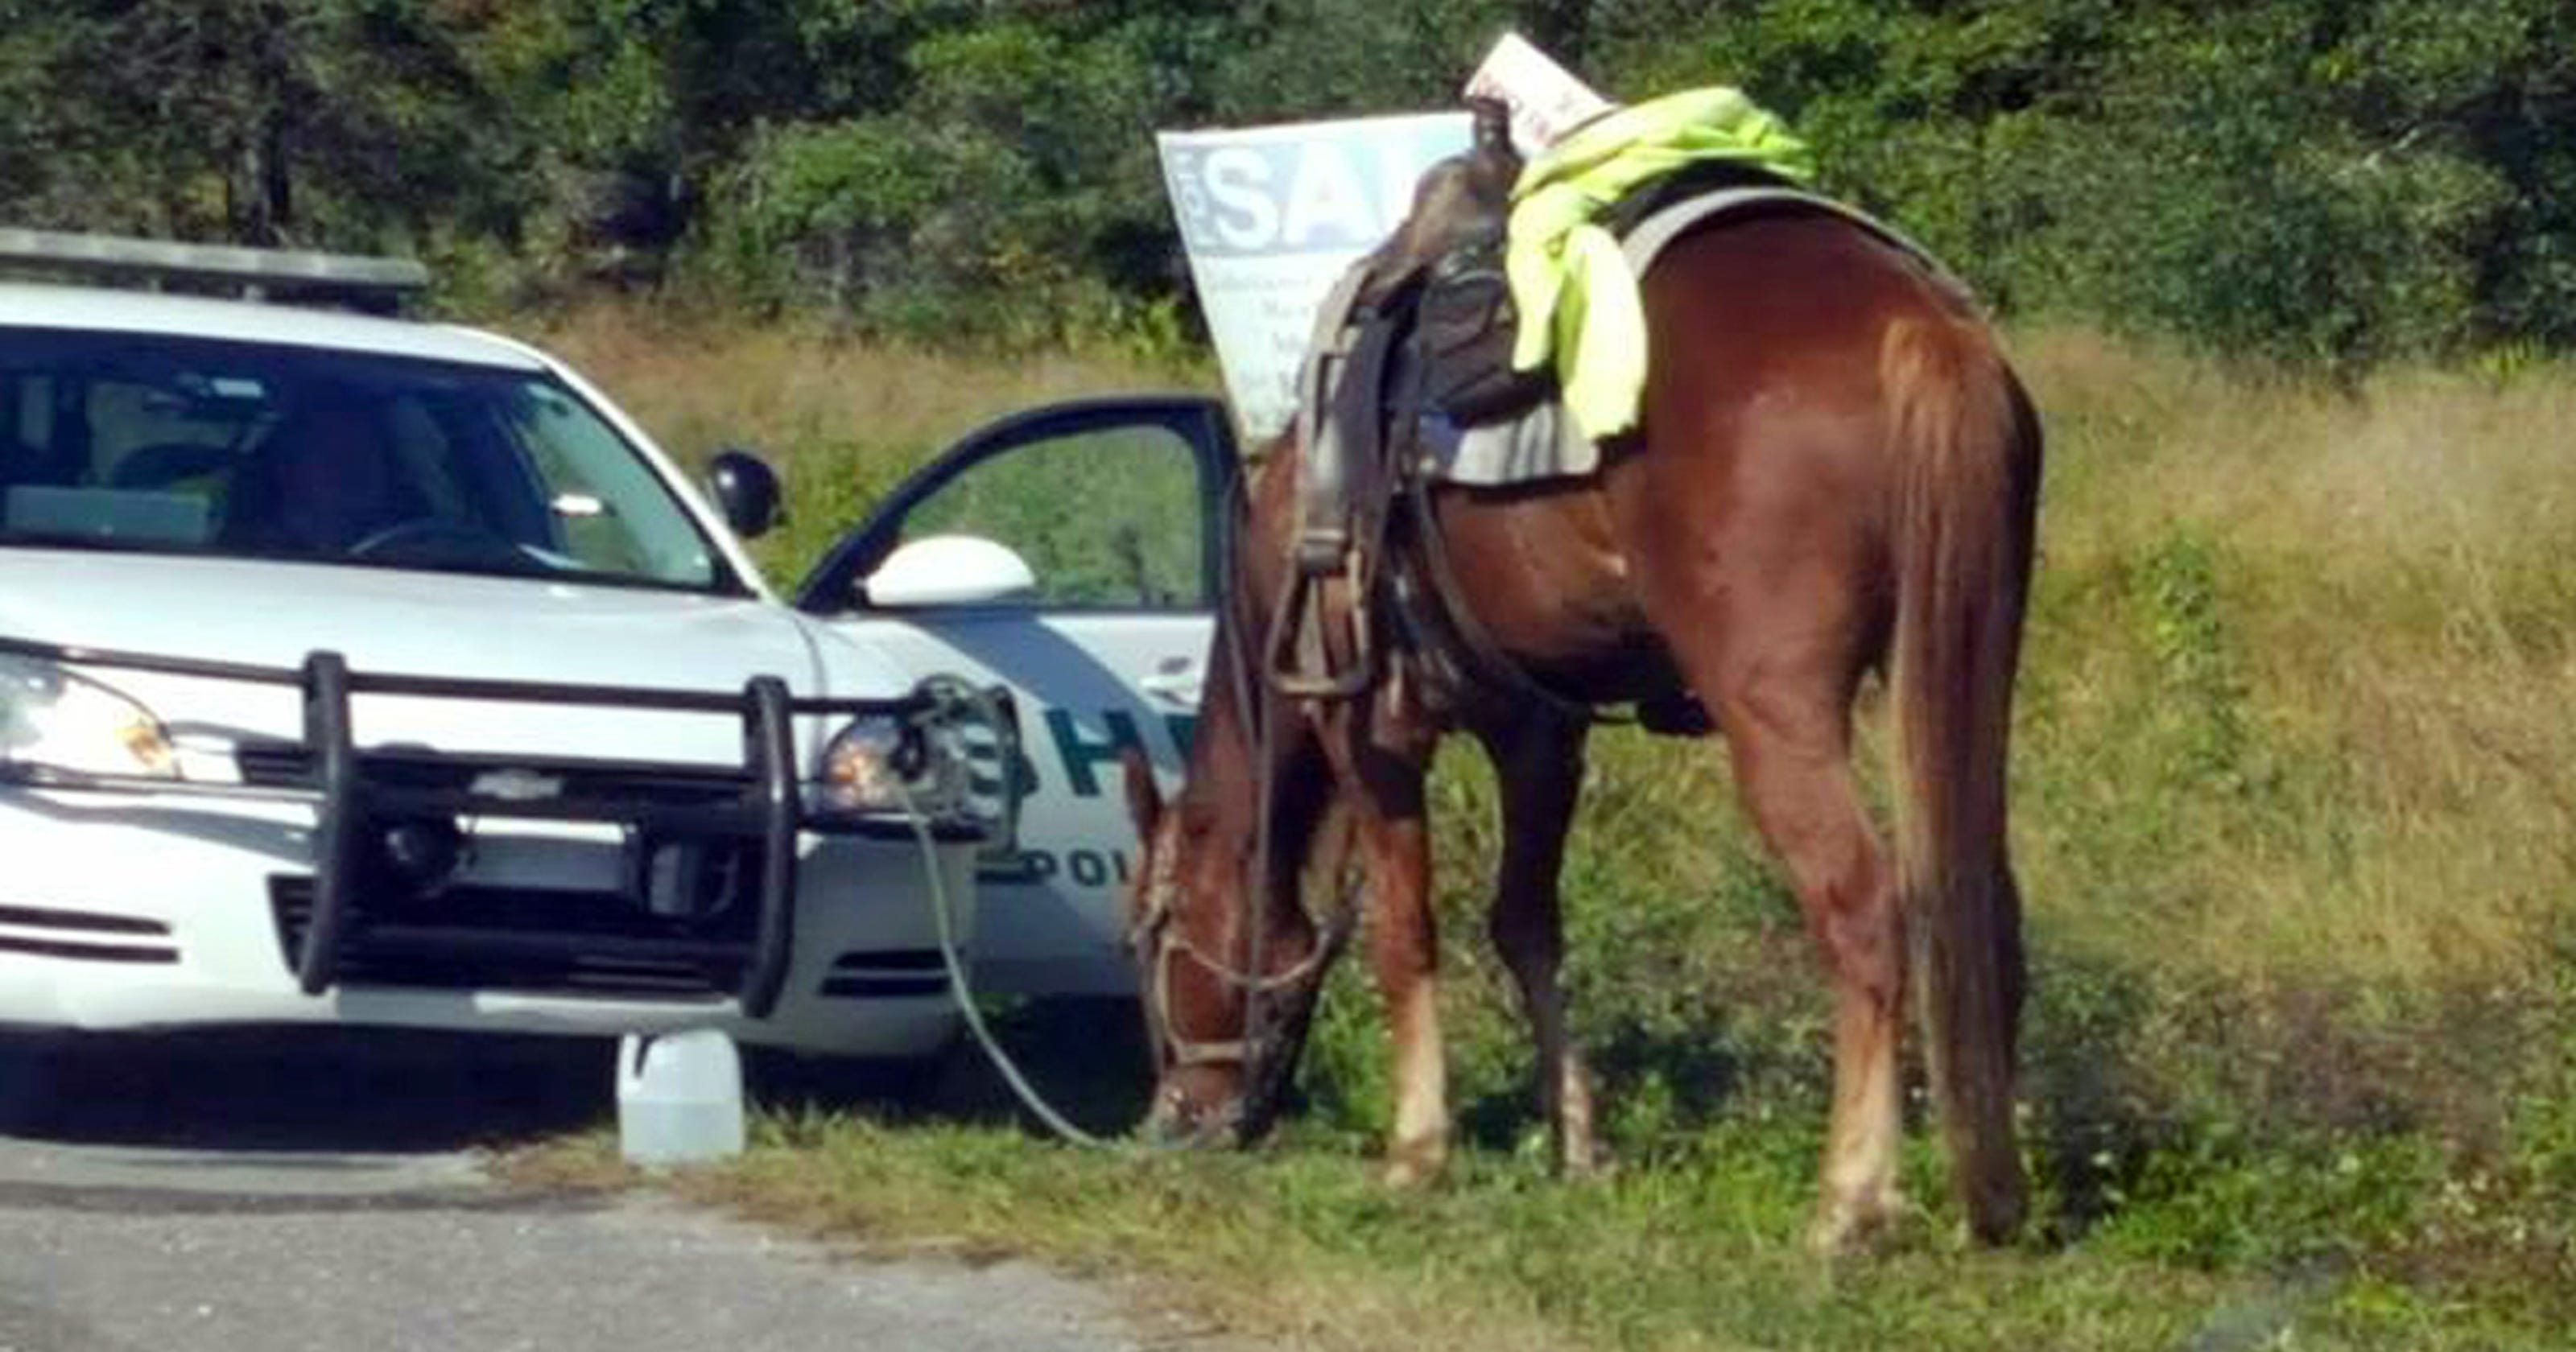 Florida woman on horseback charged with DUI